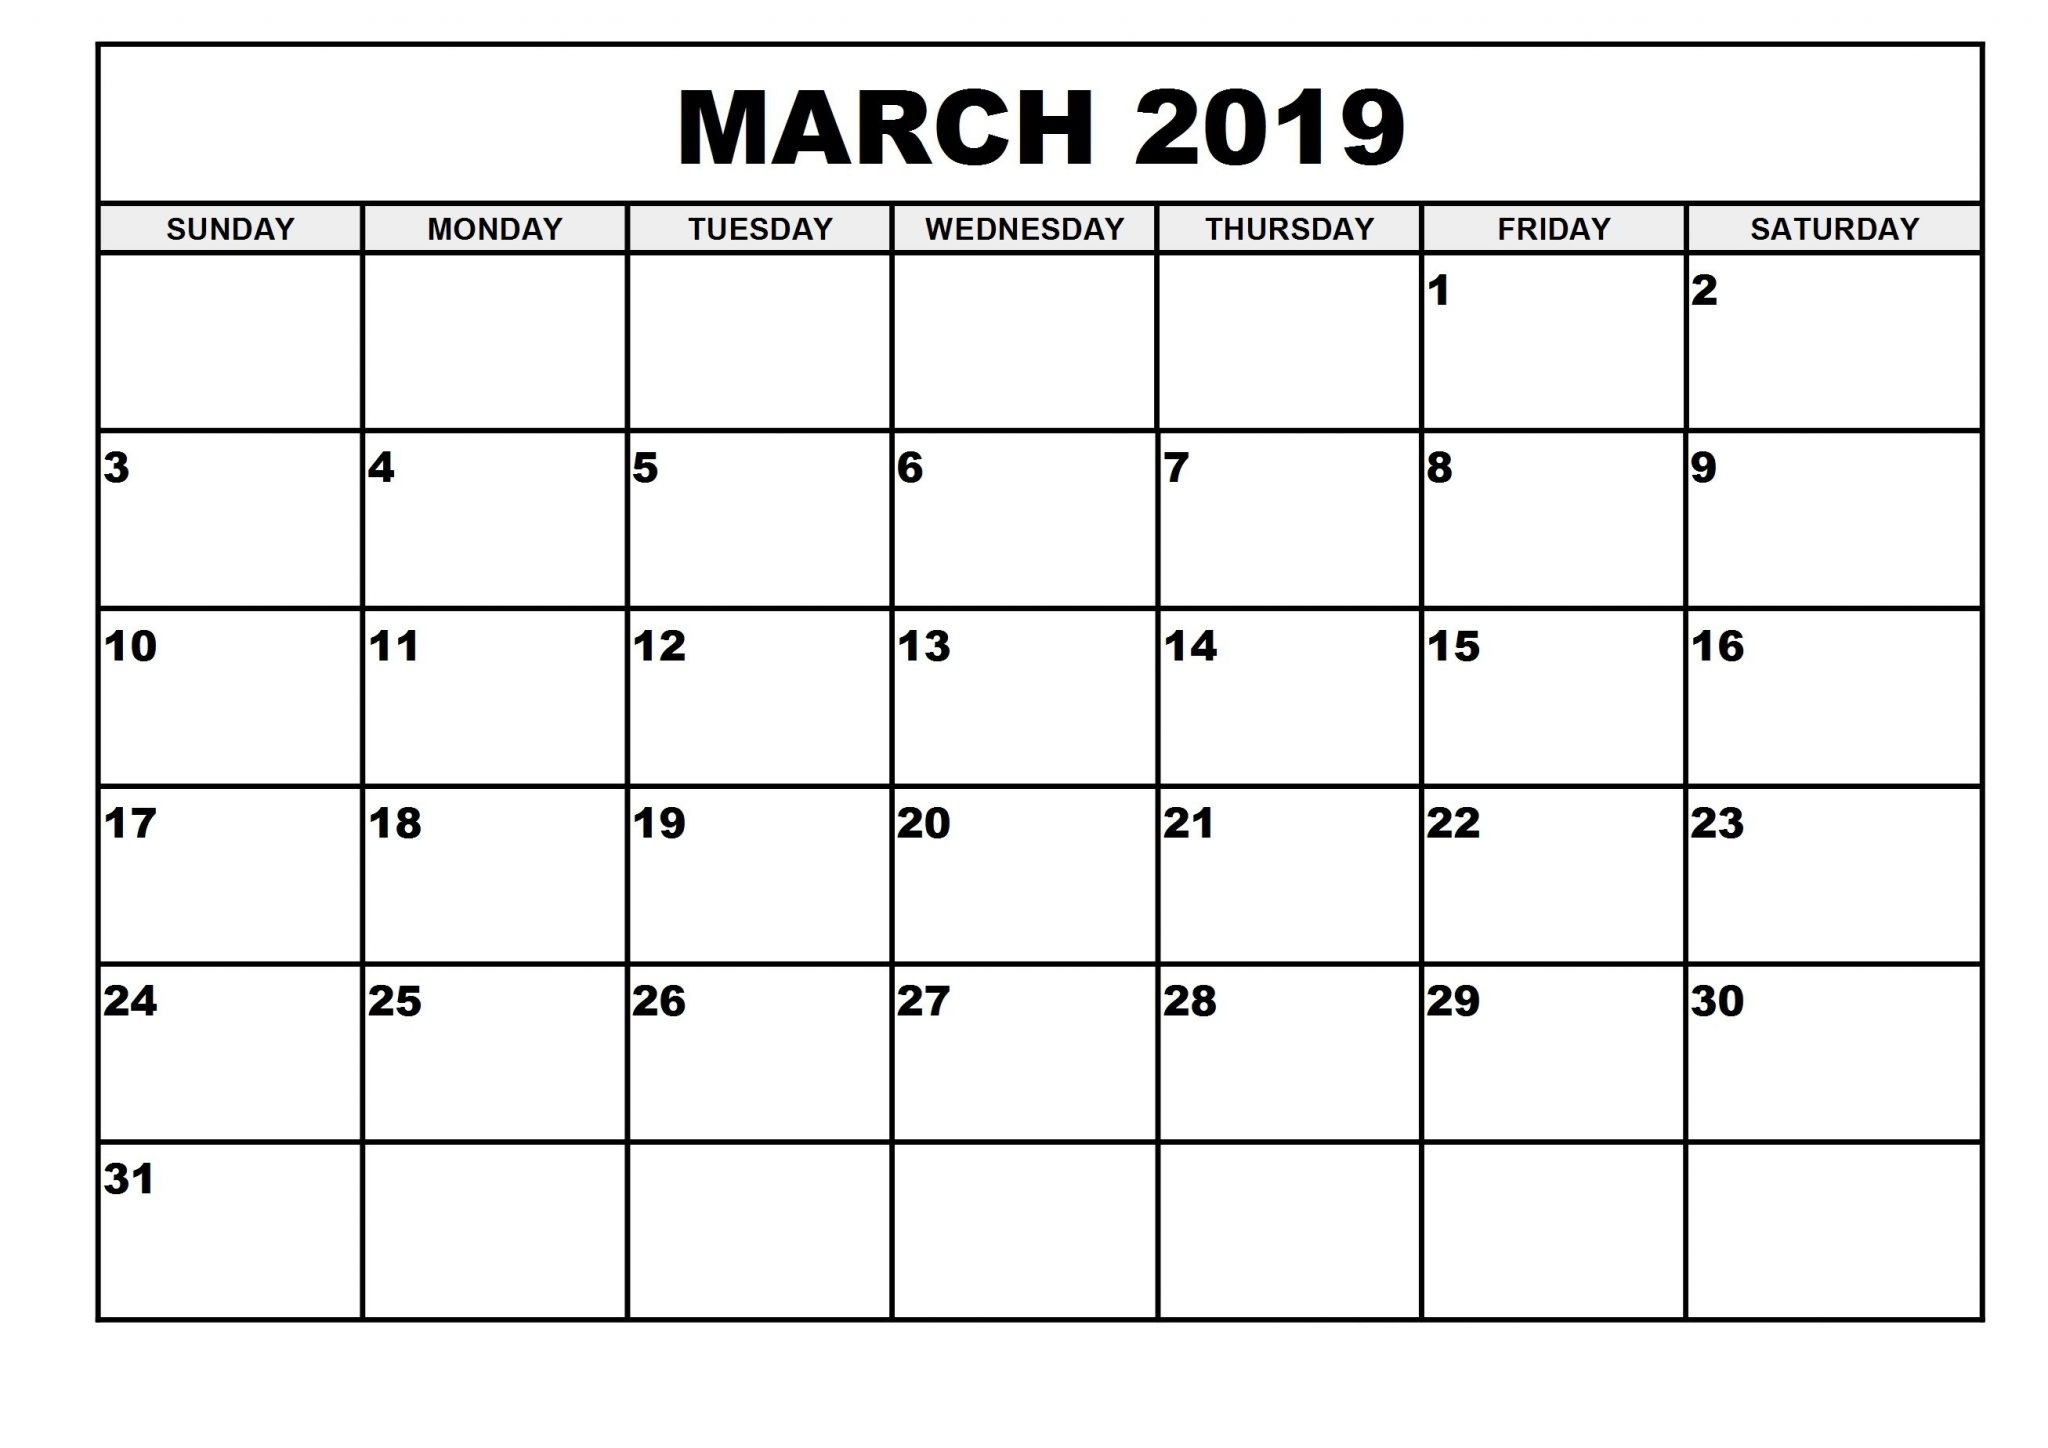 2019 Monthly Printable Calendar March - Printable Calendar 2019 pertaining to Blank Calendar To Print By Month